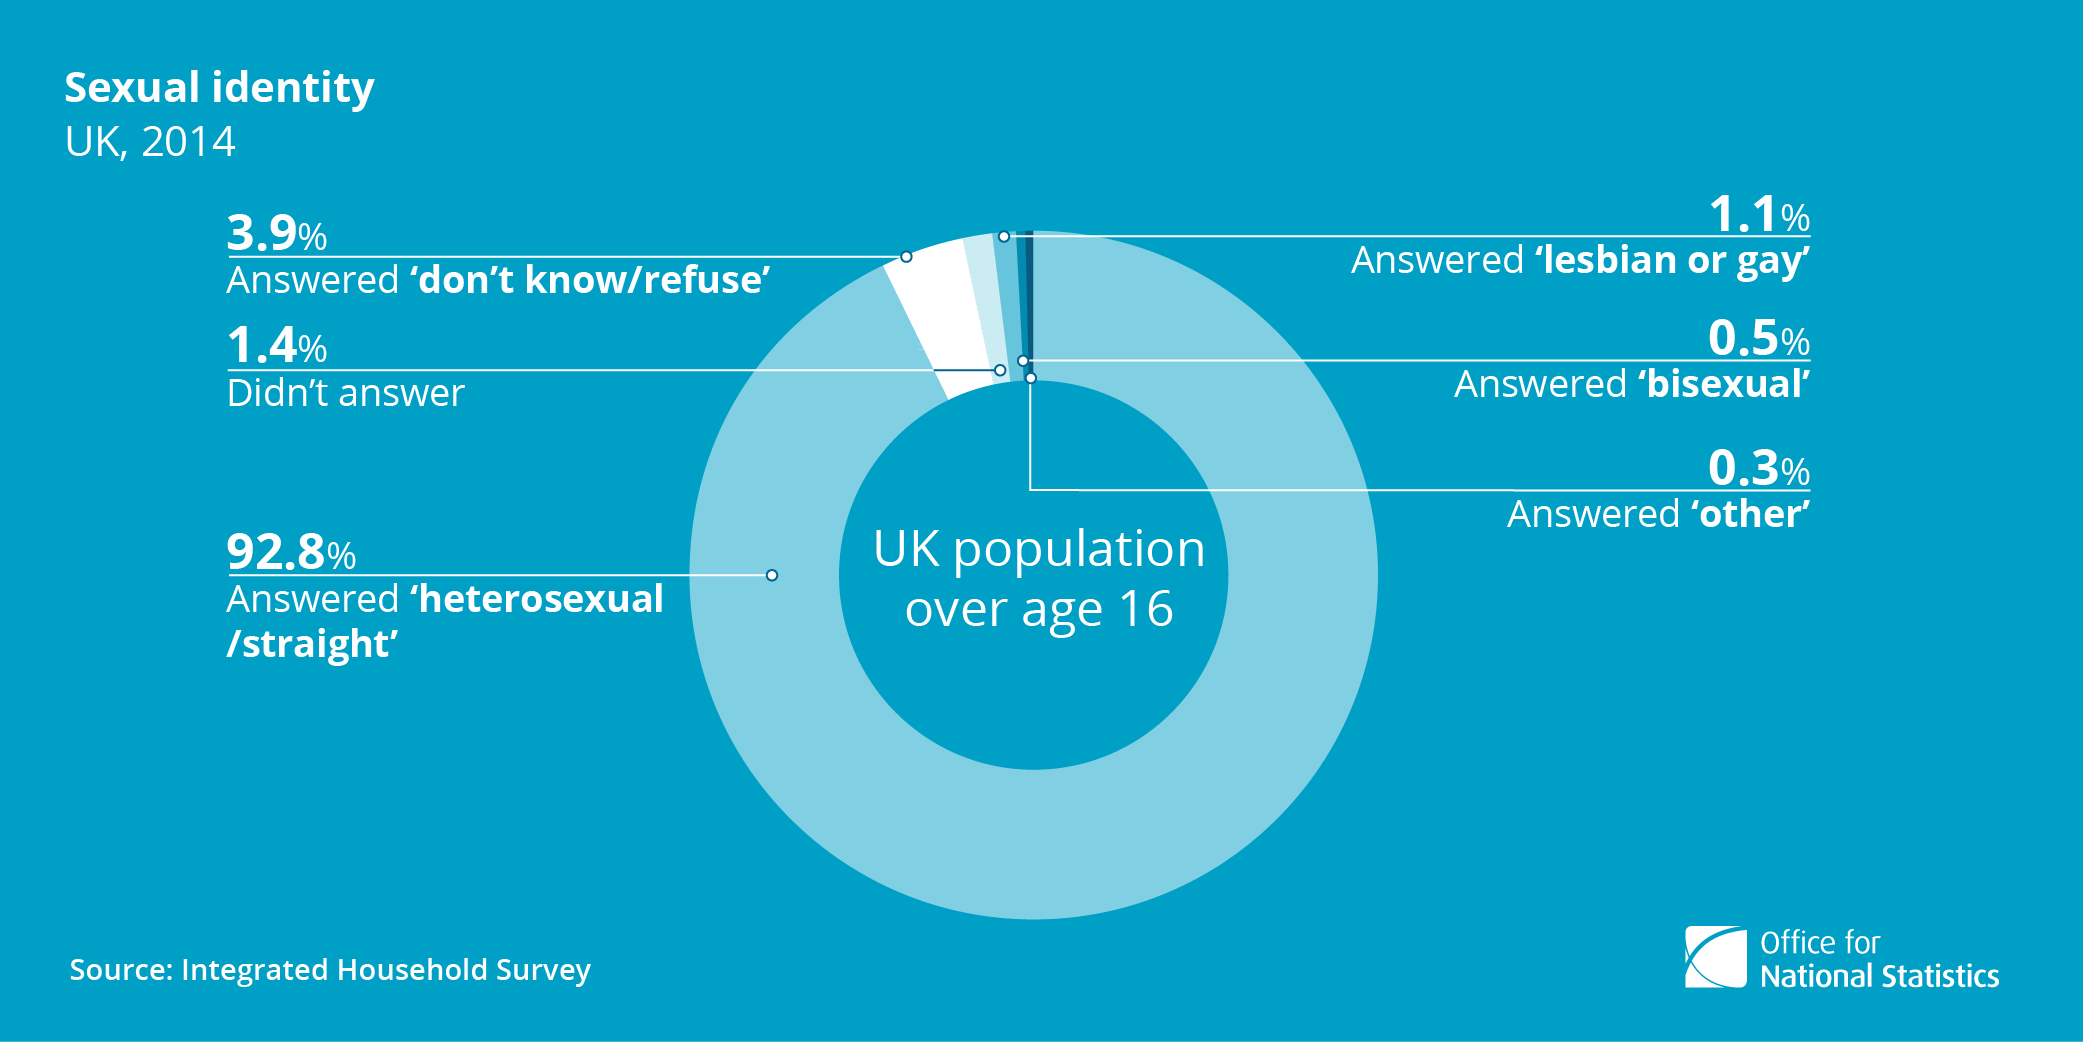 Sexual identity in the UK 2014